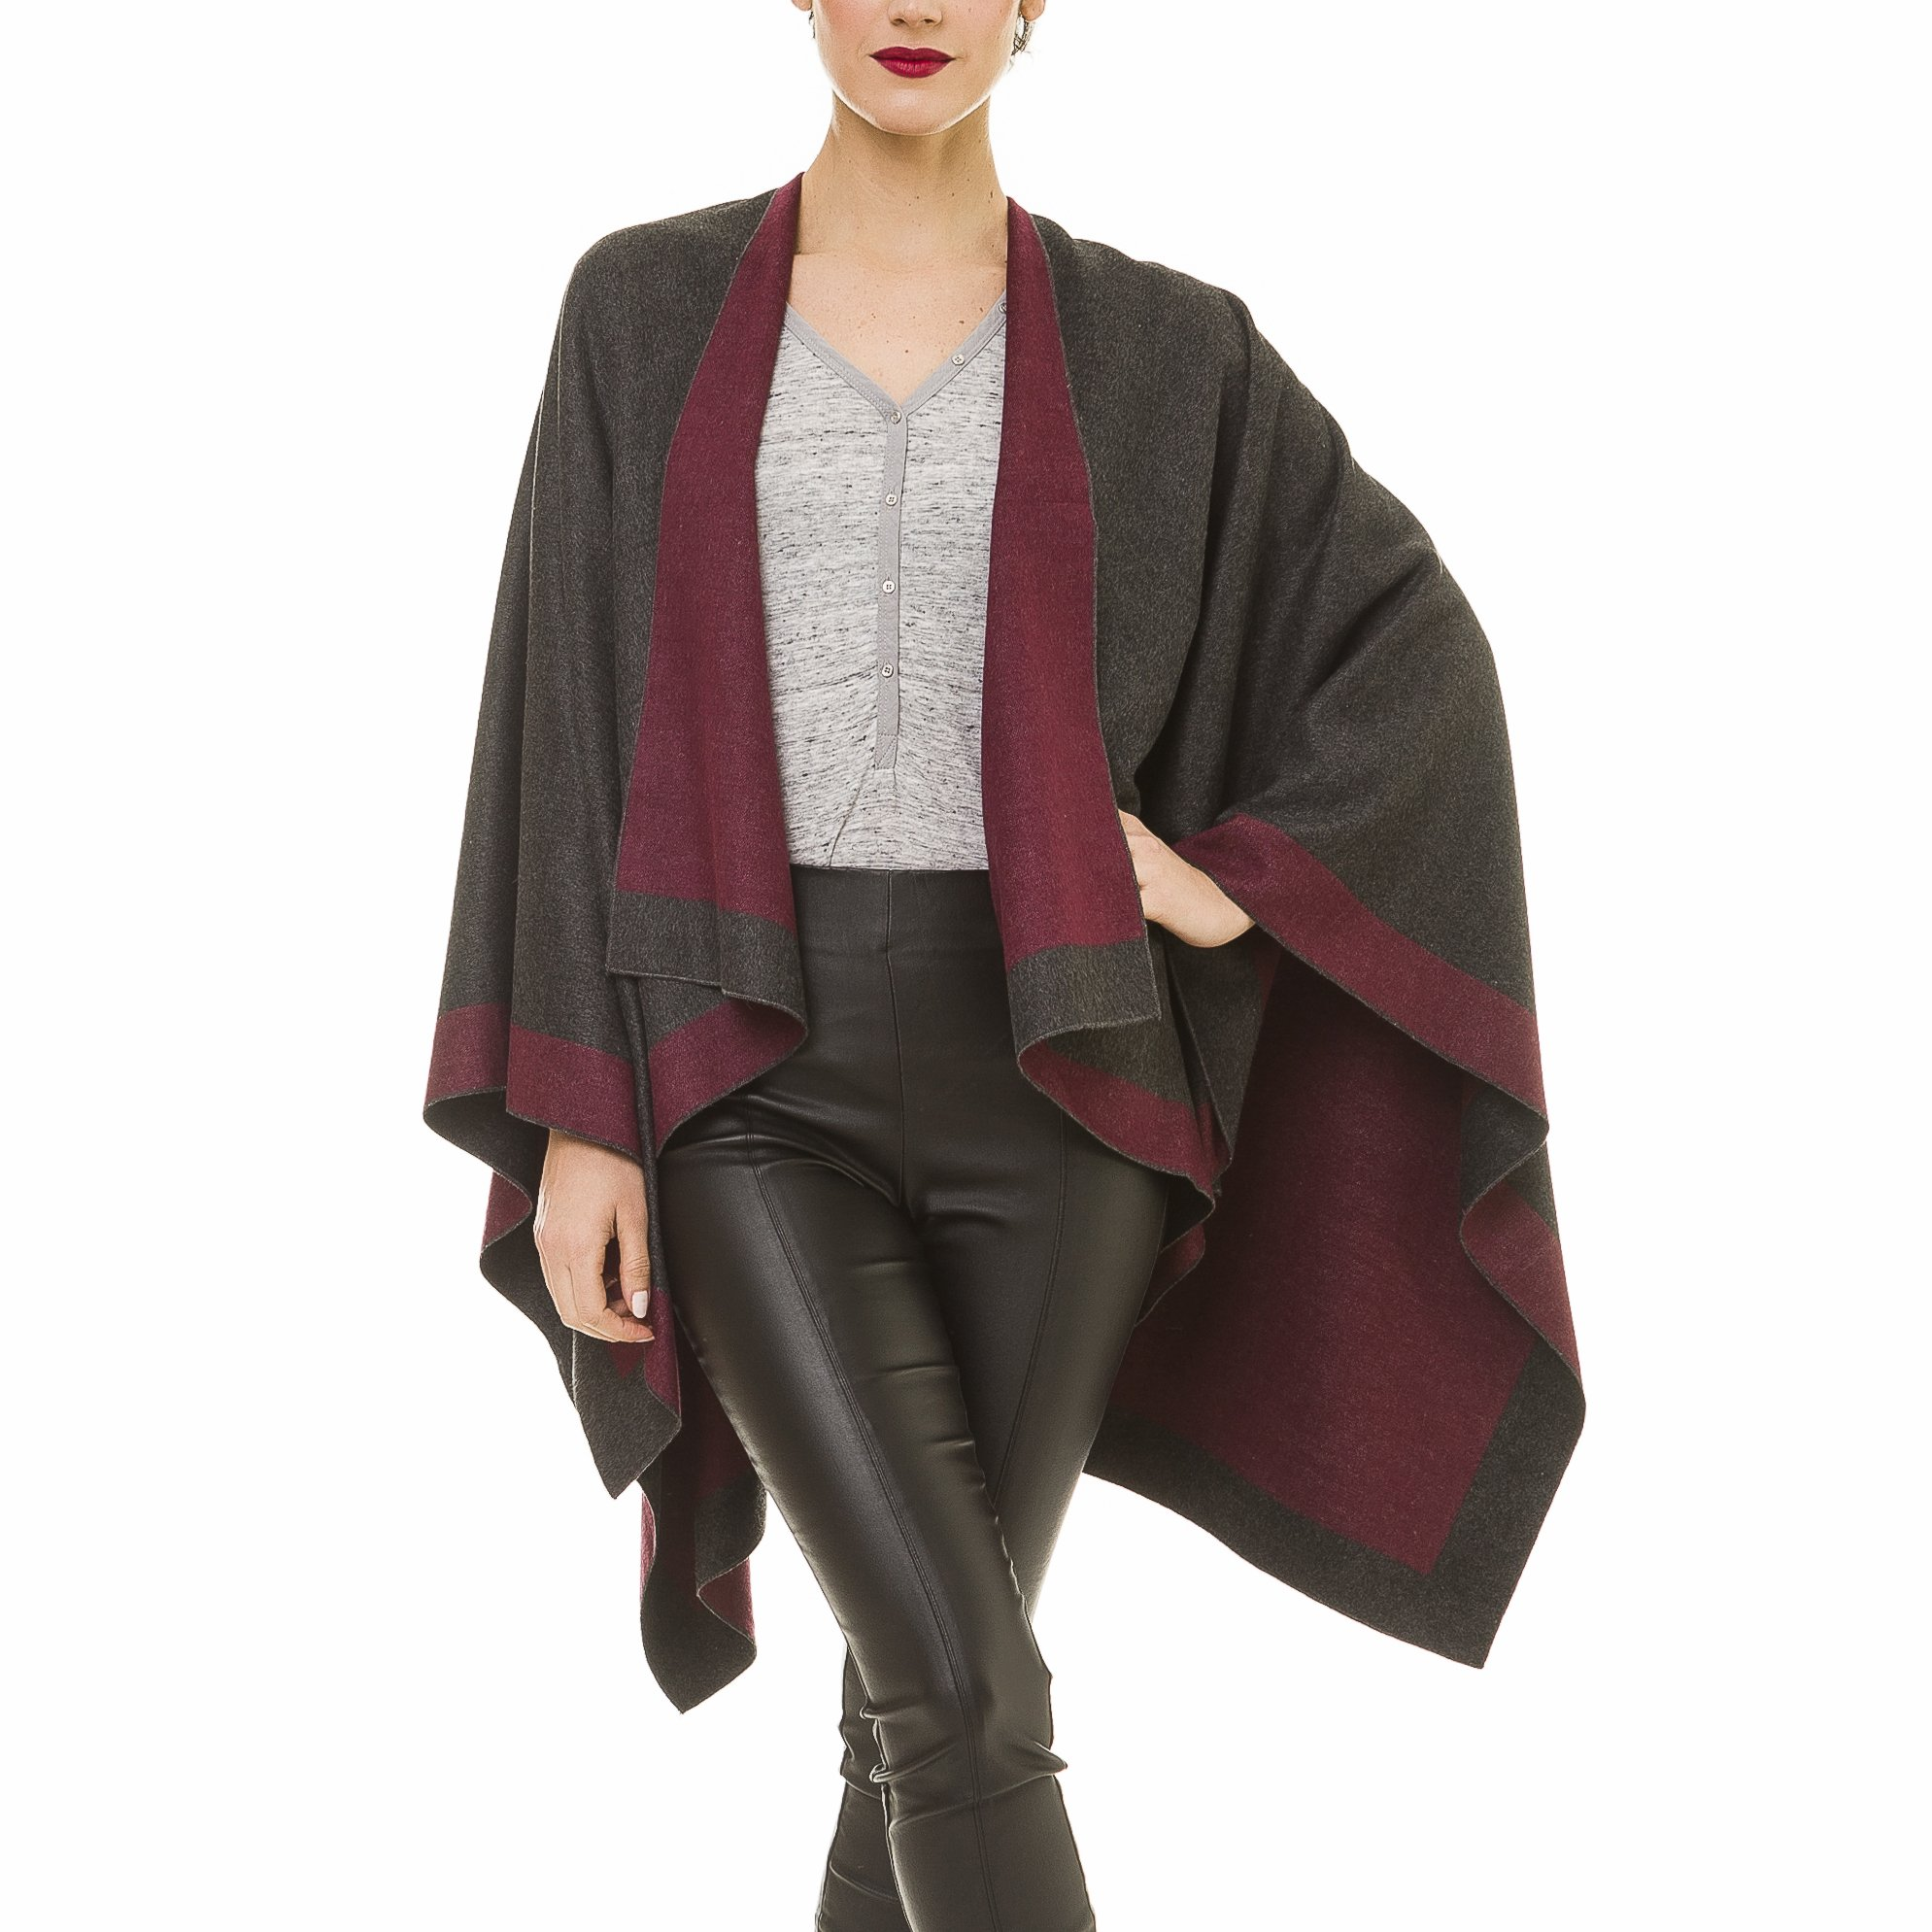 Cardigan Poncho Cape: Women Elegant Purple Gray Cardigan Shawl Wrap Sweater Coat for Winter (Gray Purple)